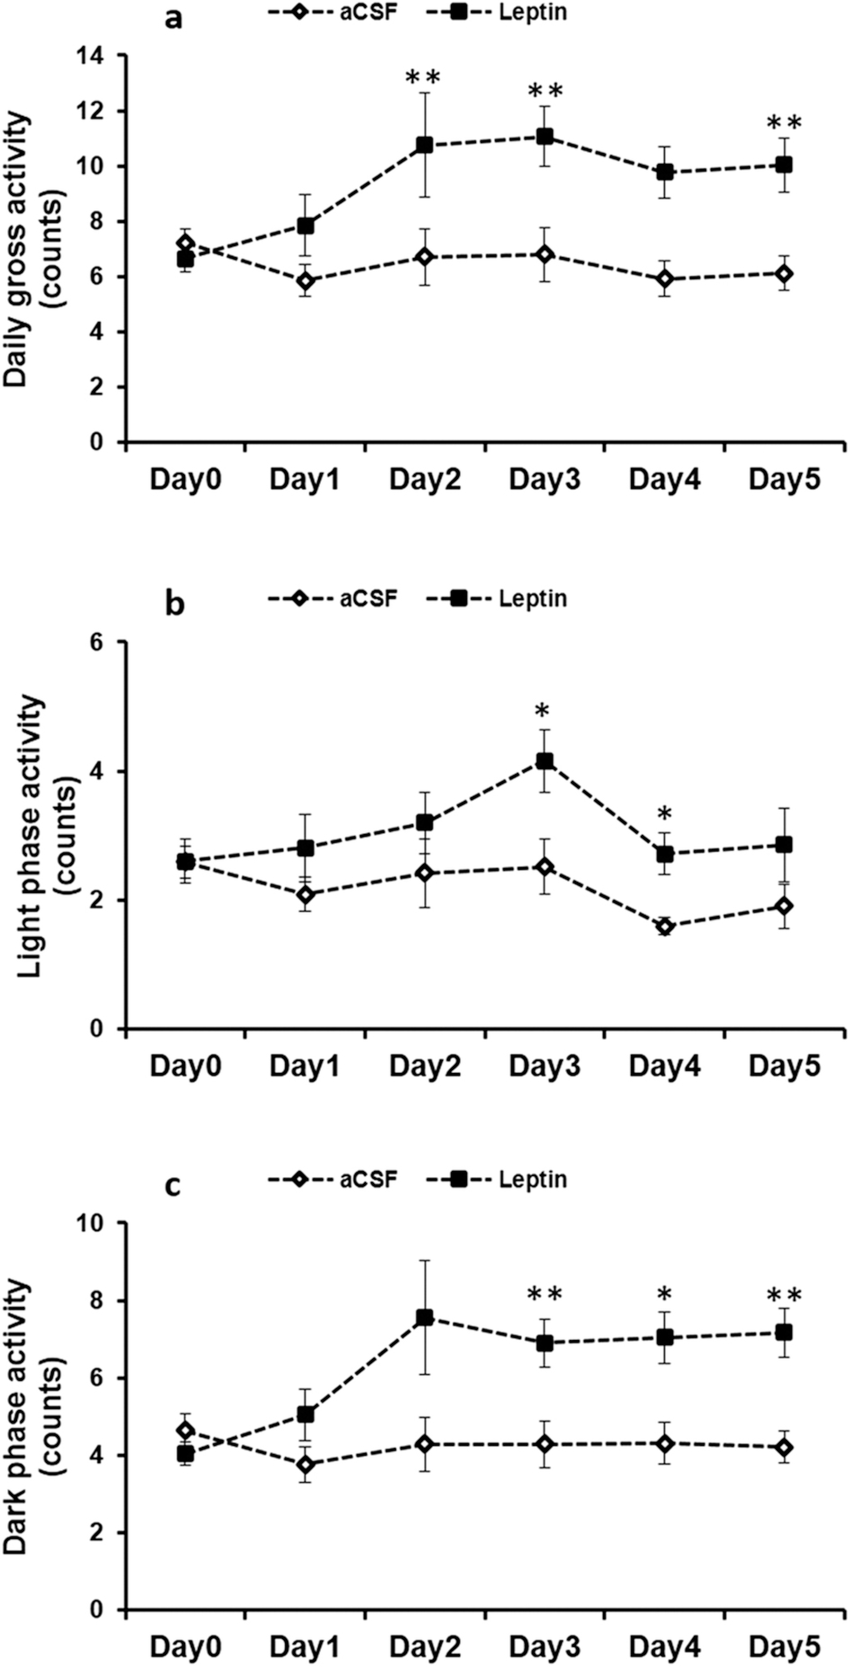 medium resolution of daily physical activity a light phase activity b and dark phase